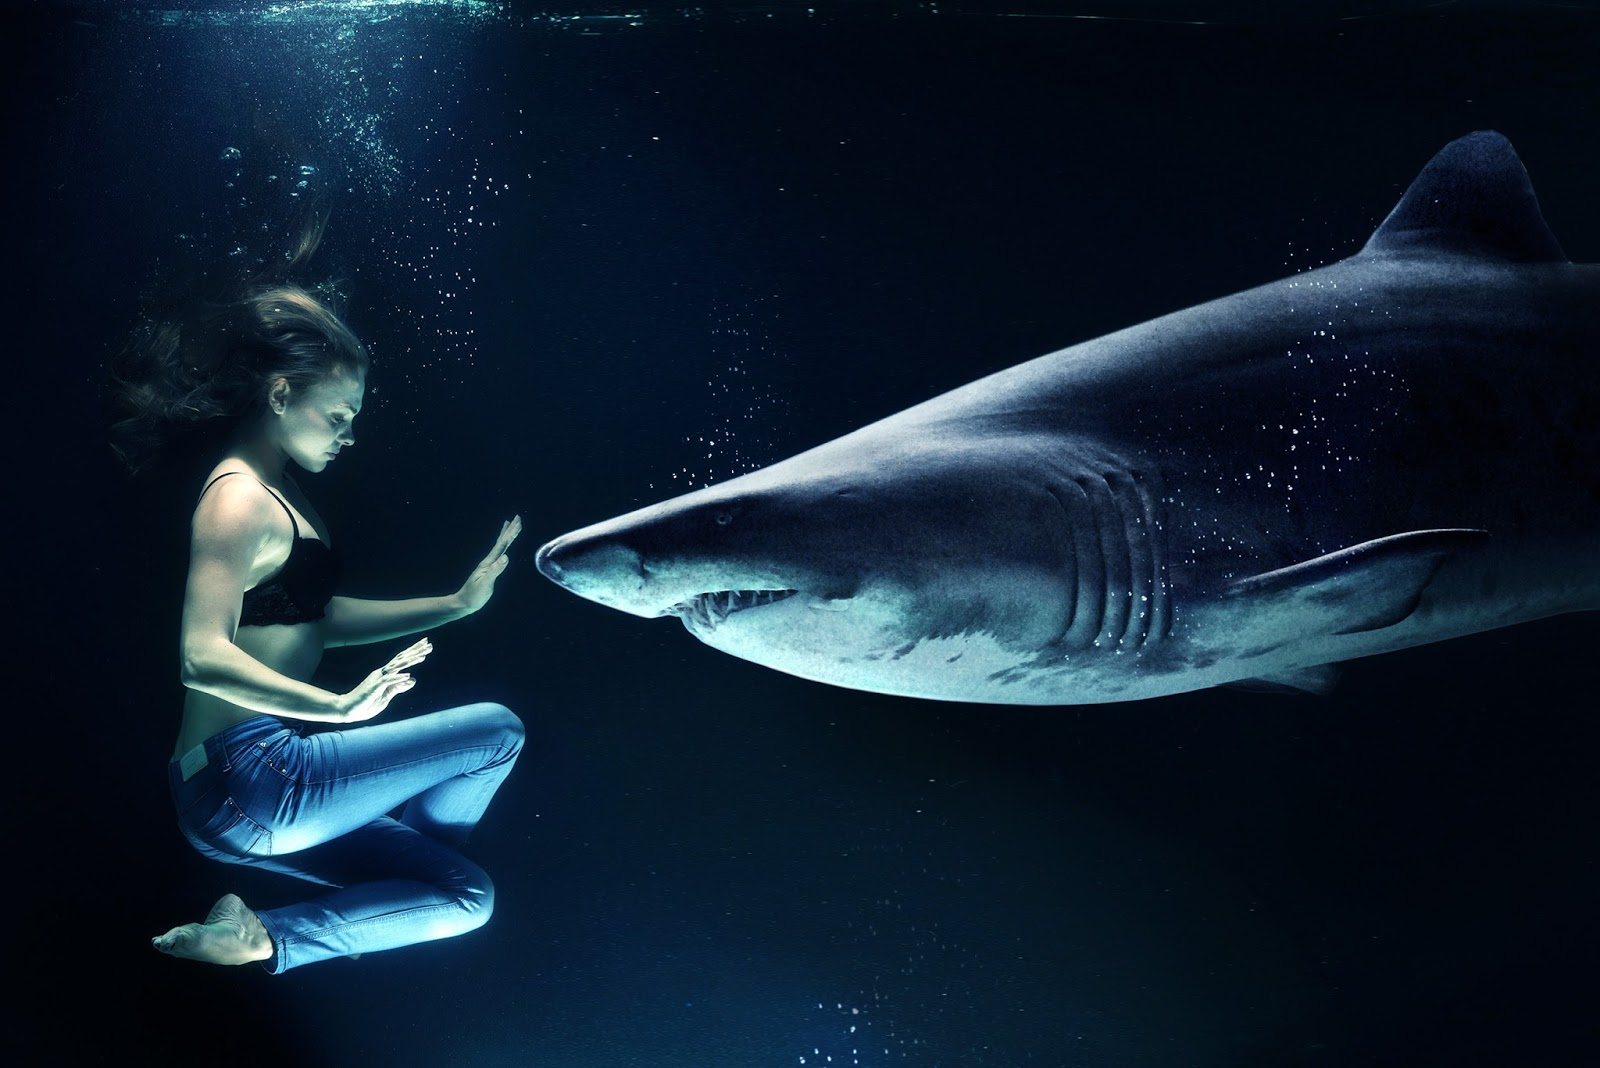 A woman under water together with a shark.